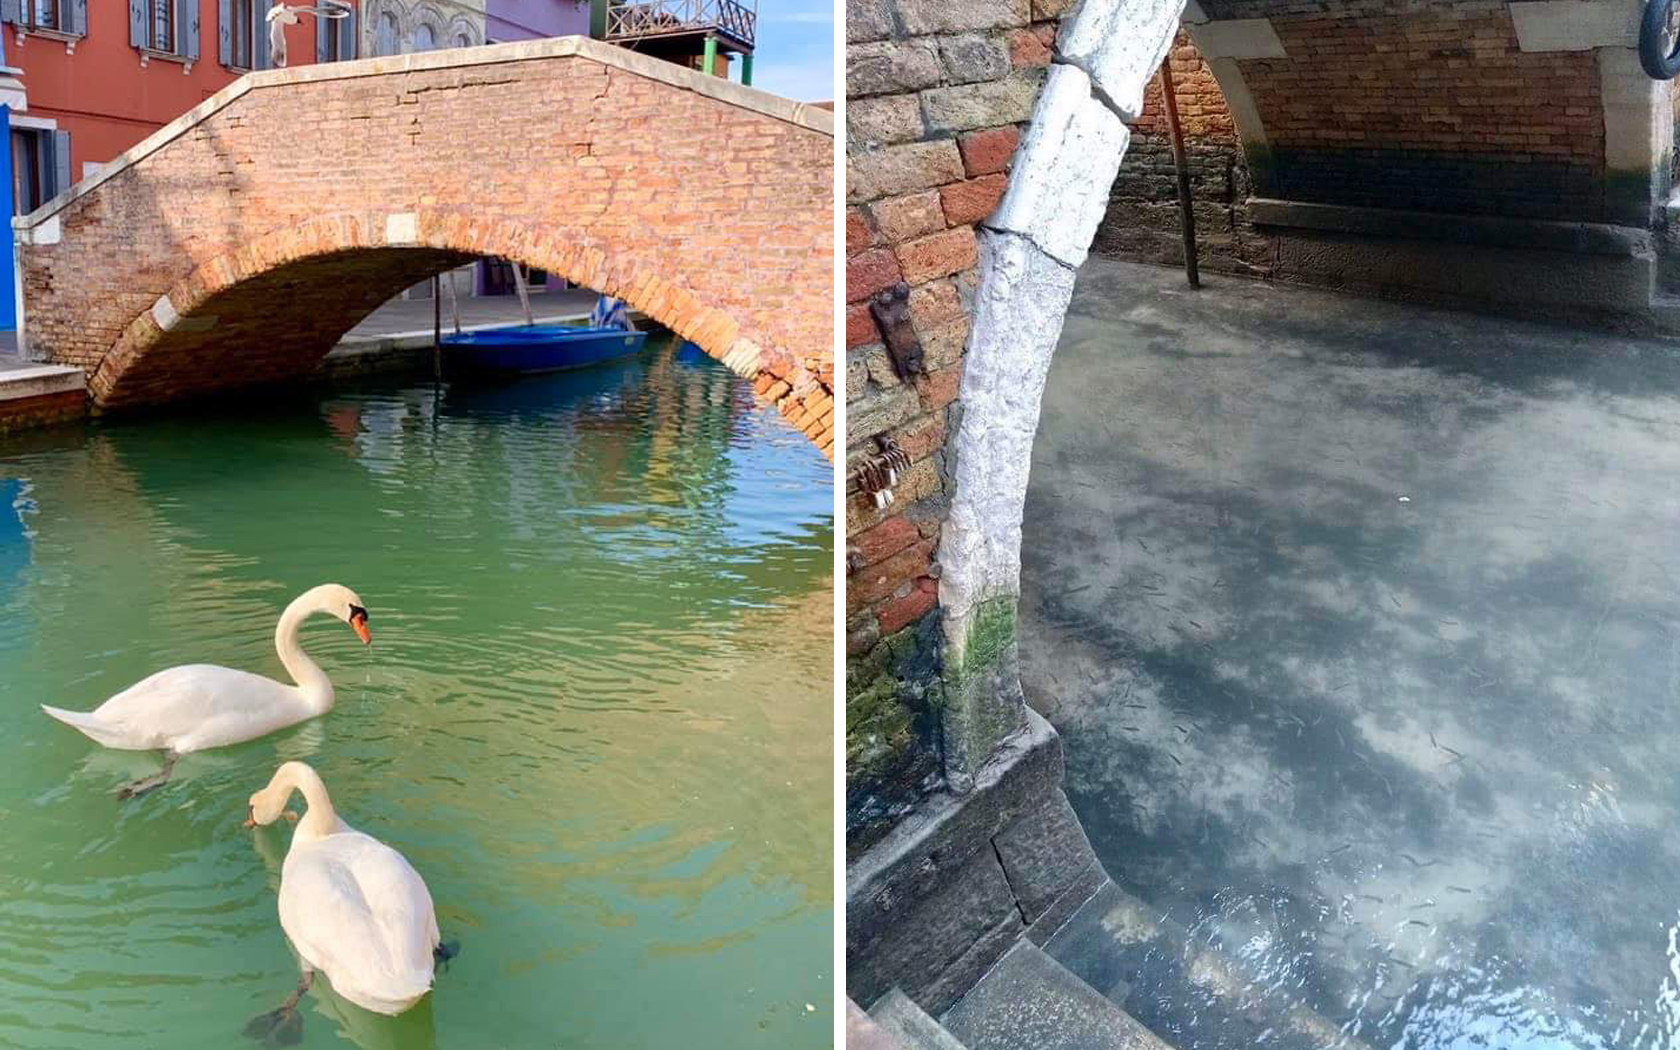 Coronavirus Lockdown: Venice Locals Share Photos Of Clear Canals